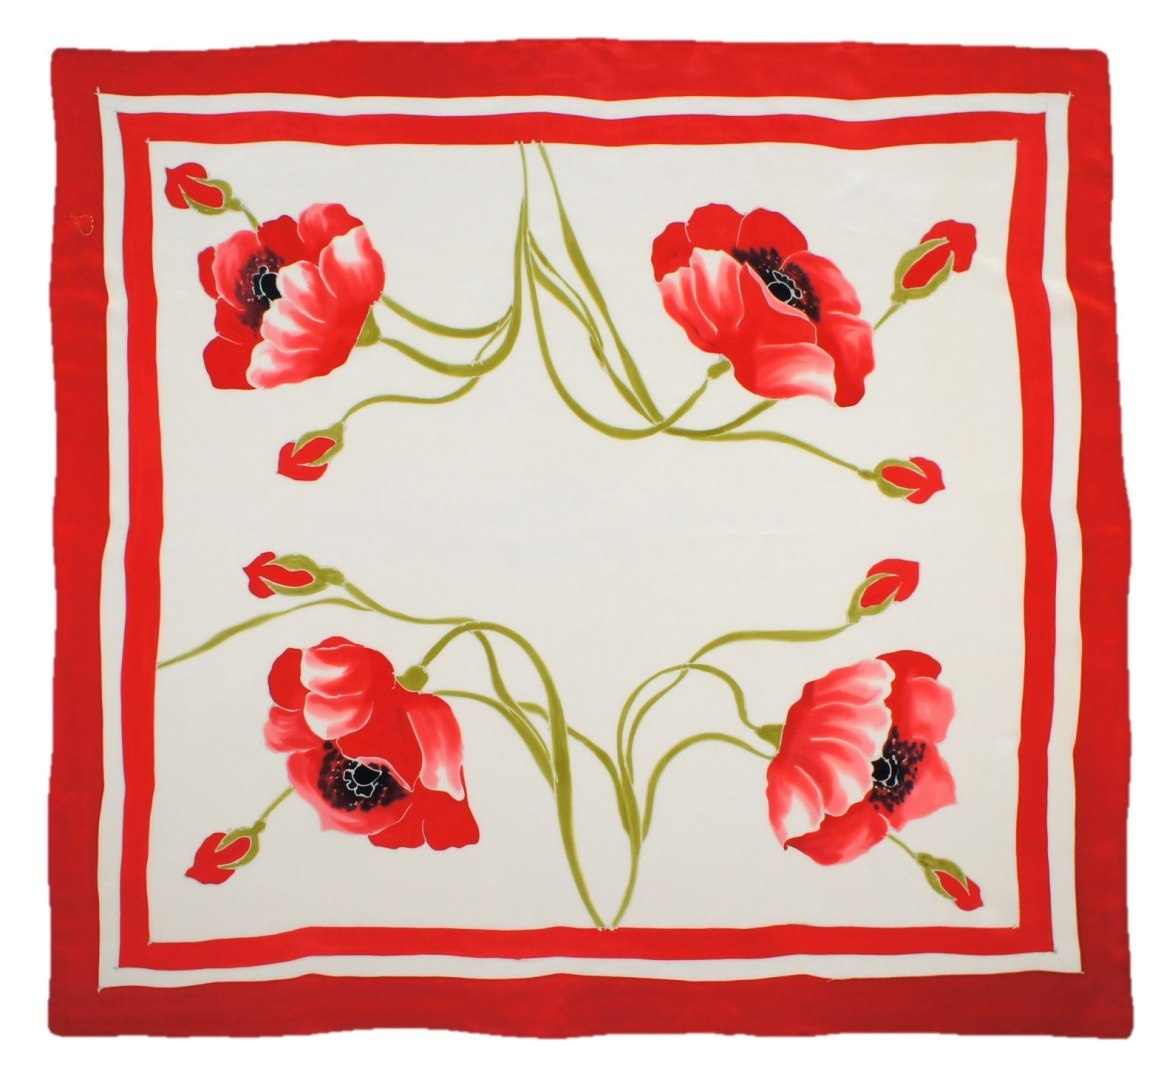 AM-454 Hand-painted silk scarf, 90x90cm